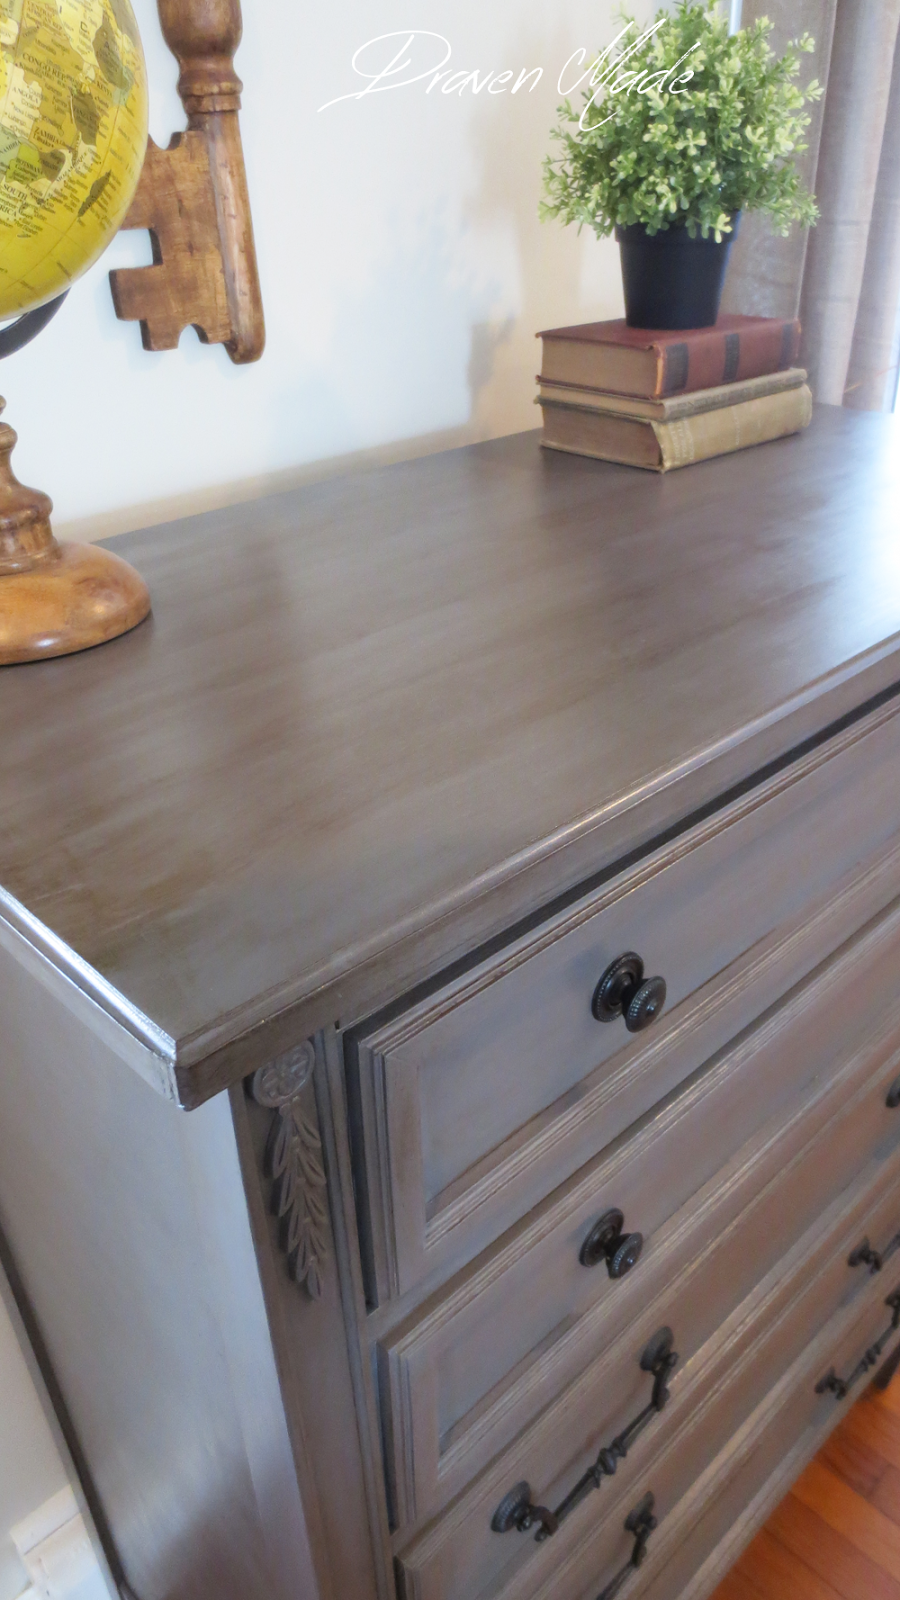 Draven Made Bronzed Grey Dresser Furniture Makeover